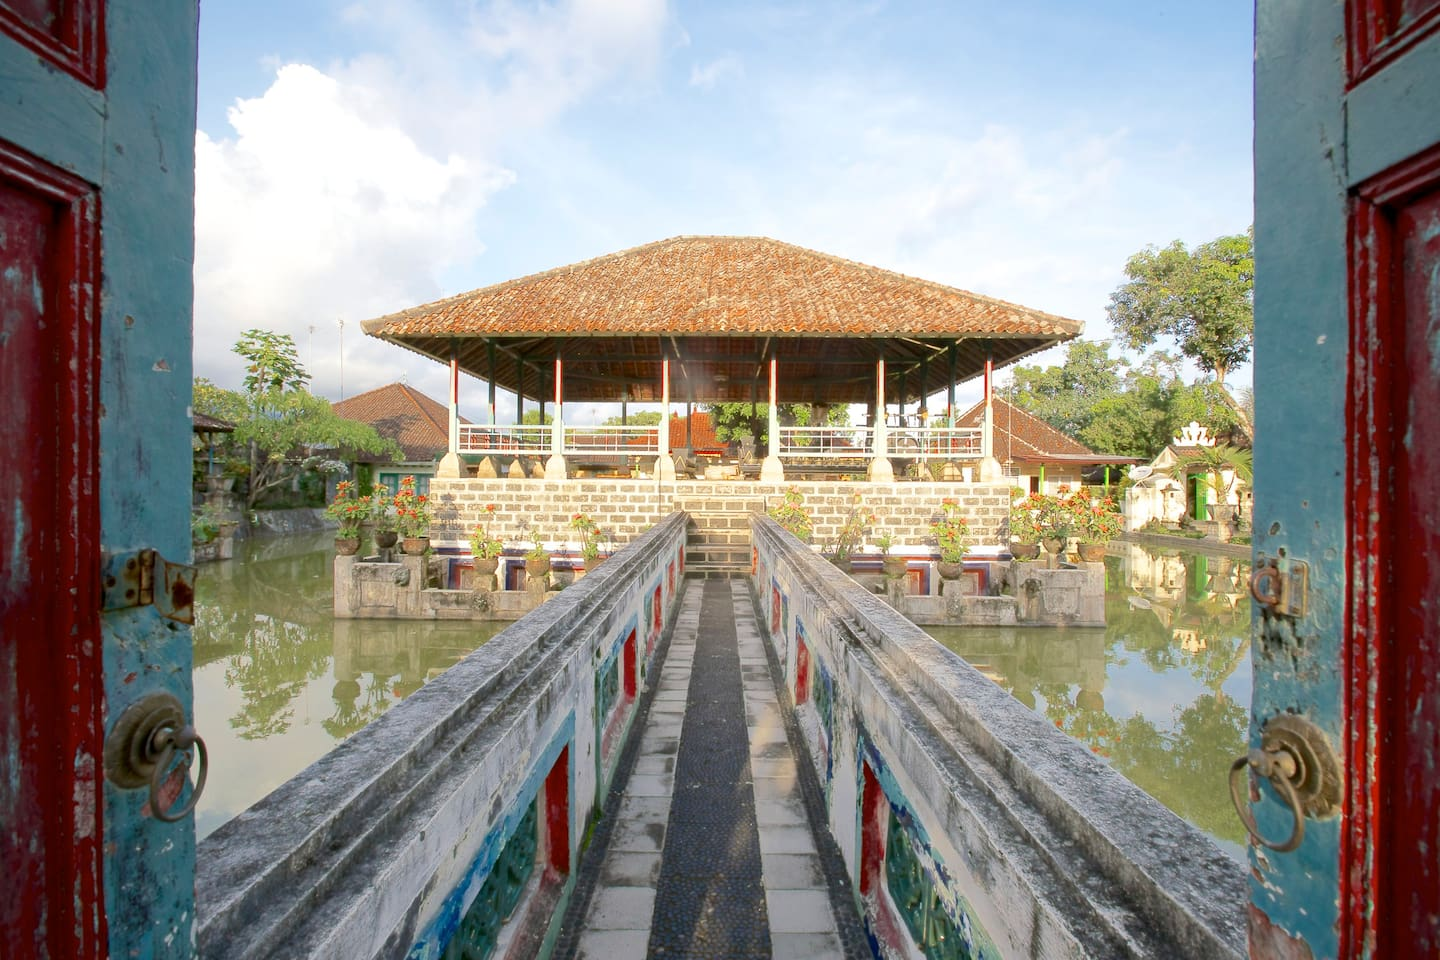 Welcome to Puri Agung Karangasem, this is the main courtyard with the fishpond and chill-out bungalow